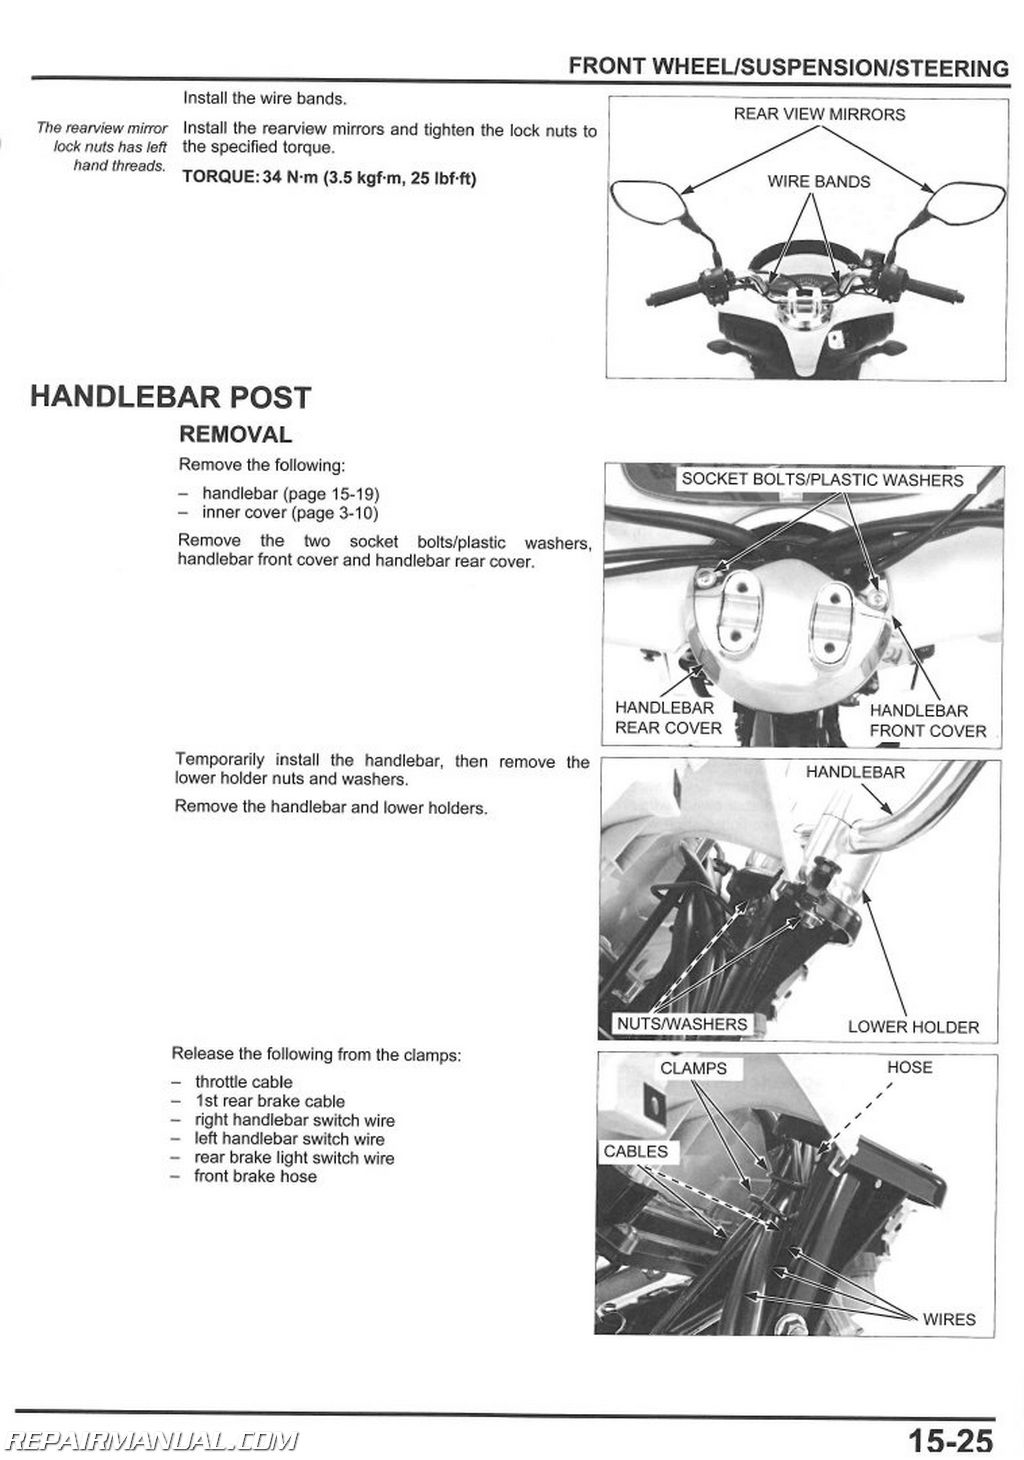 2011 honda pcx125 scooter service manual by repairmanual